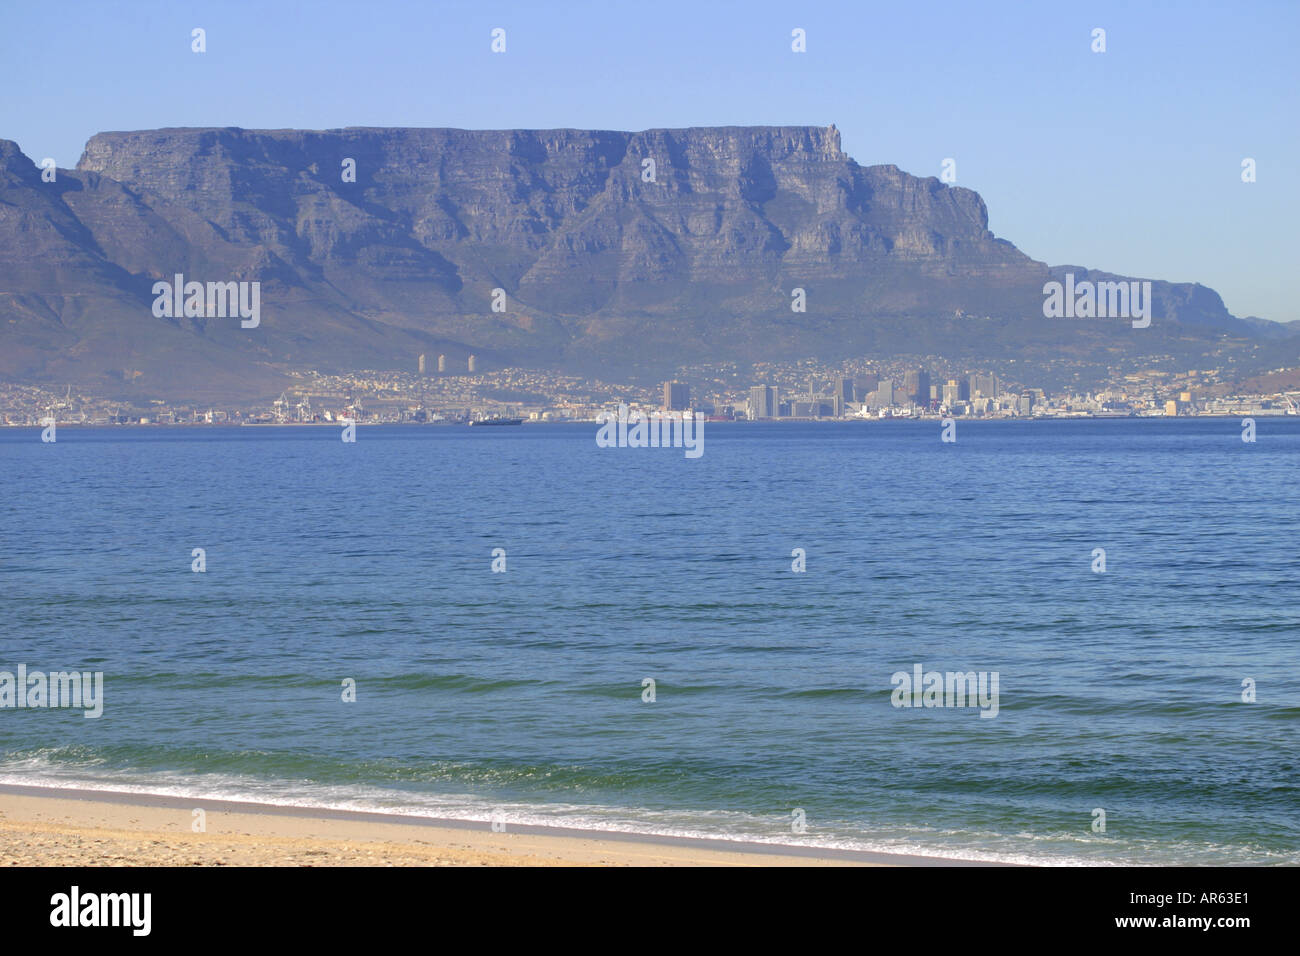 Table Mountain from across thee bay - Stock Image